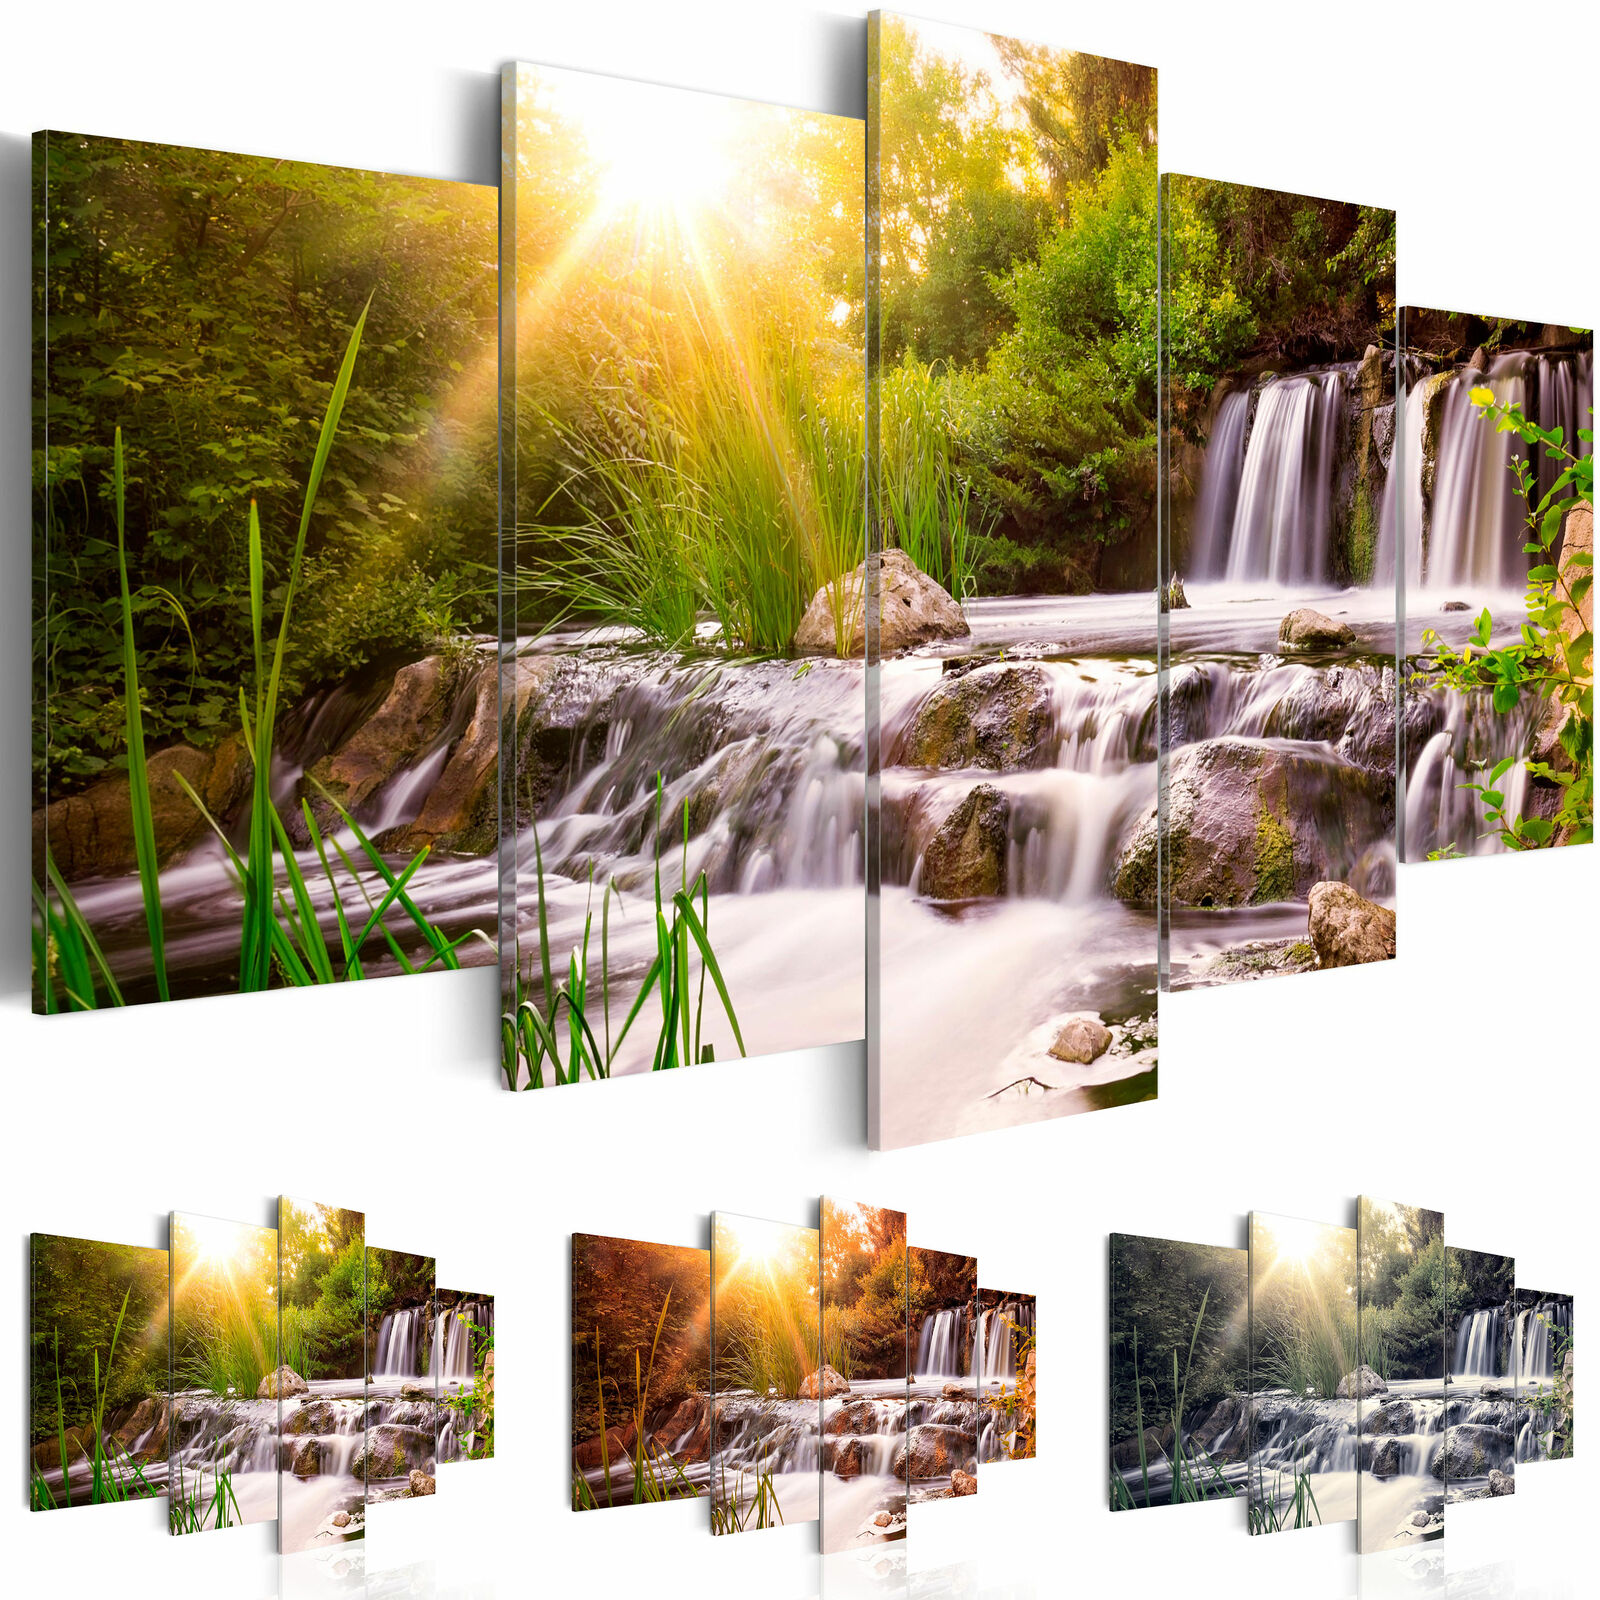 leinwand bilder xxl kunstdruck bild wasserfall natur landschaft c c 0026 b n eur 22 90. Black Bedroom Furniture Sets. Home Design Ideas